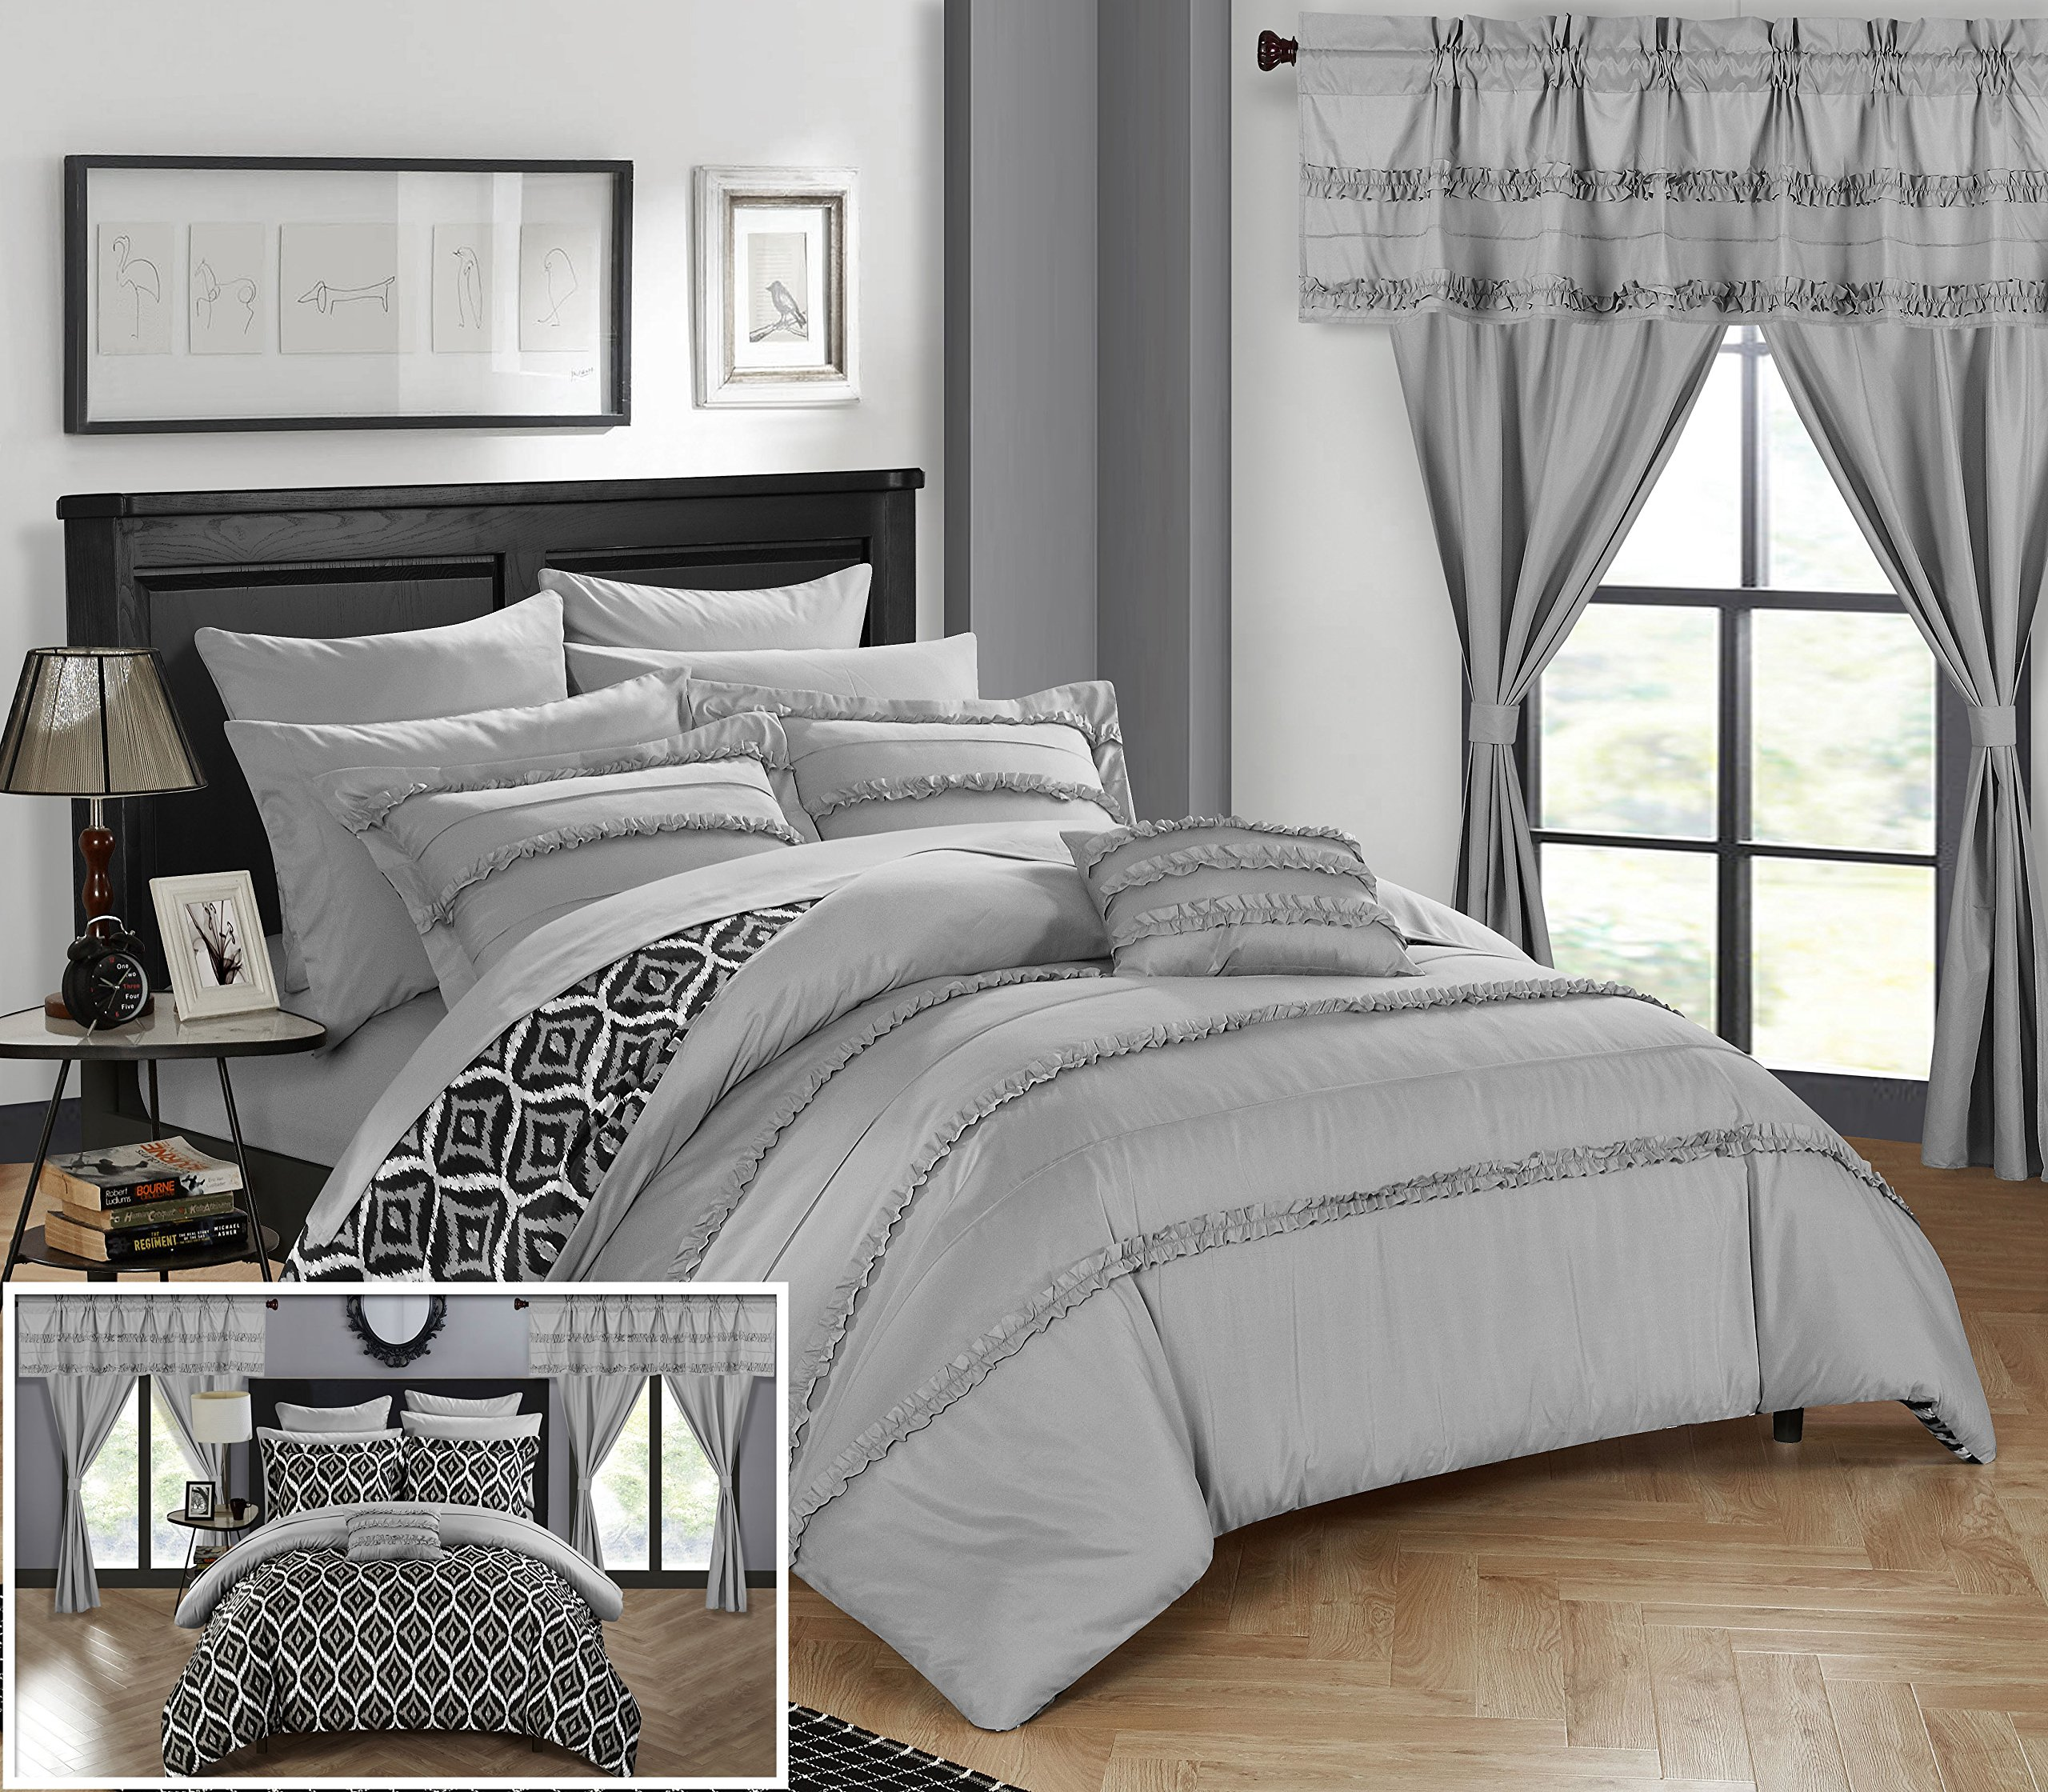 Chic Home CS0735-AN 20 Piece Adina Complete Bed Room In A Bag Super Set Pinch Pleated Design Reversible Geometric Pattern Comforter Set, Sheet, Window Treatments And Decorative Pillows, King, Grey